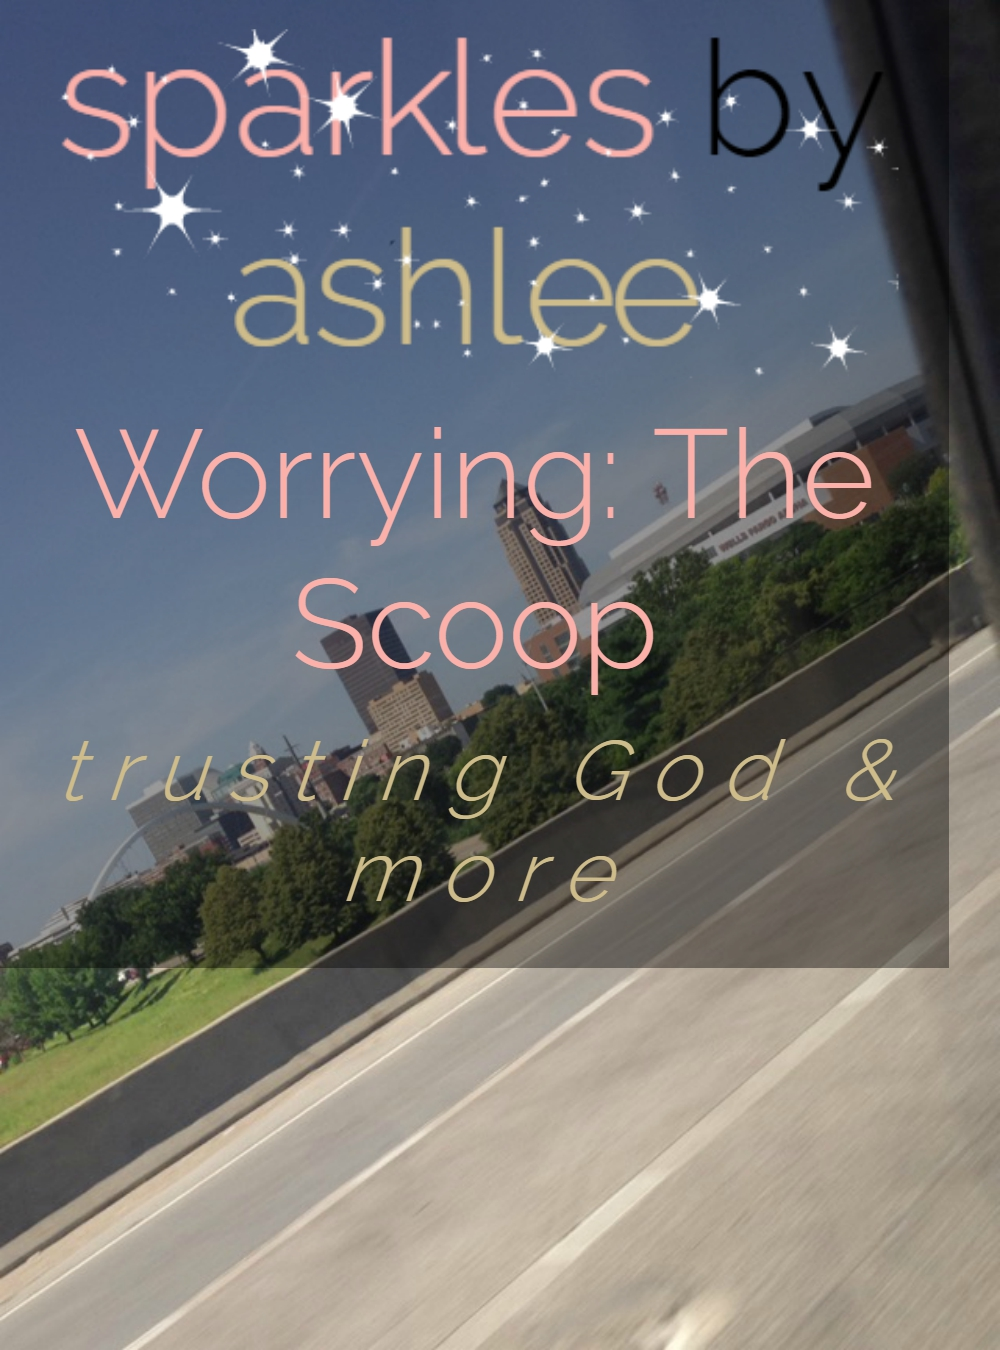 Worrying-The-Scoop-Sparkles-by-Ashlee.jpg